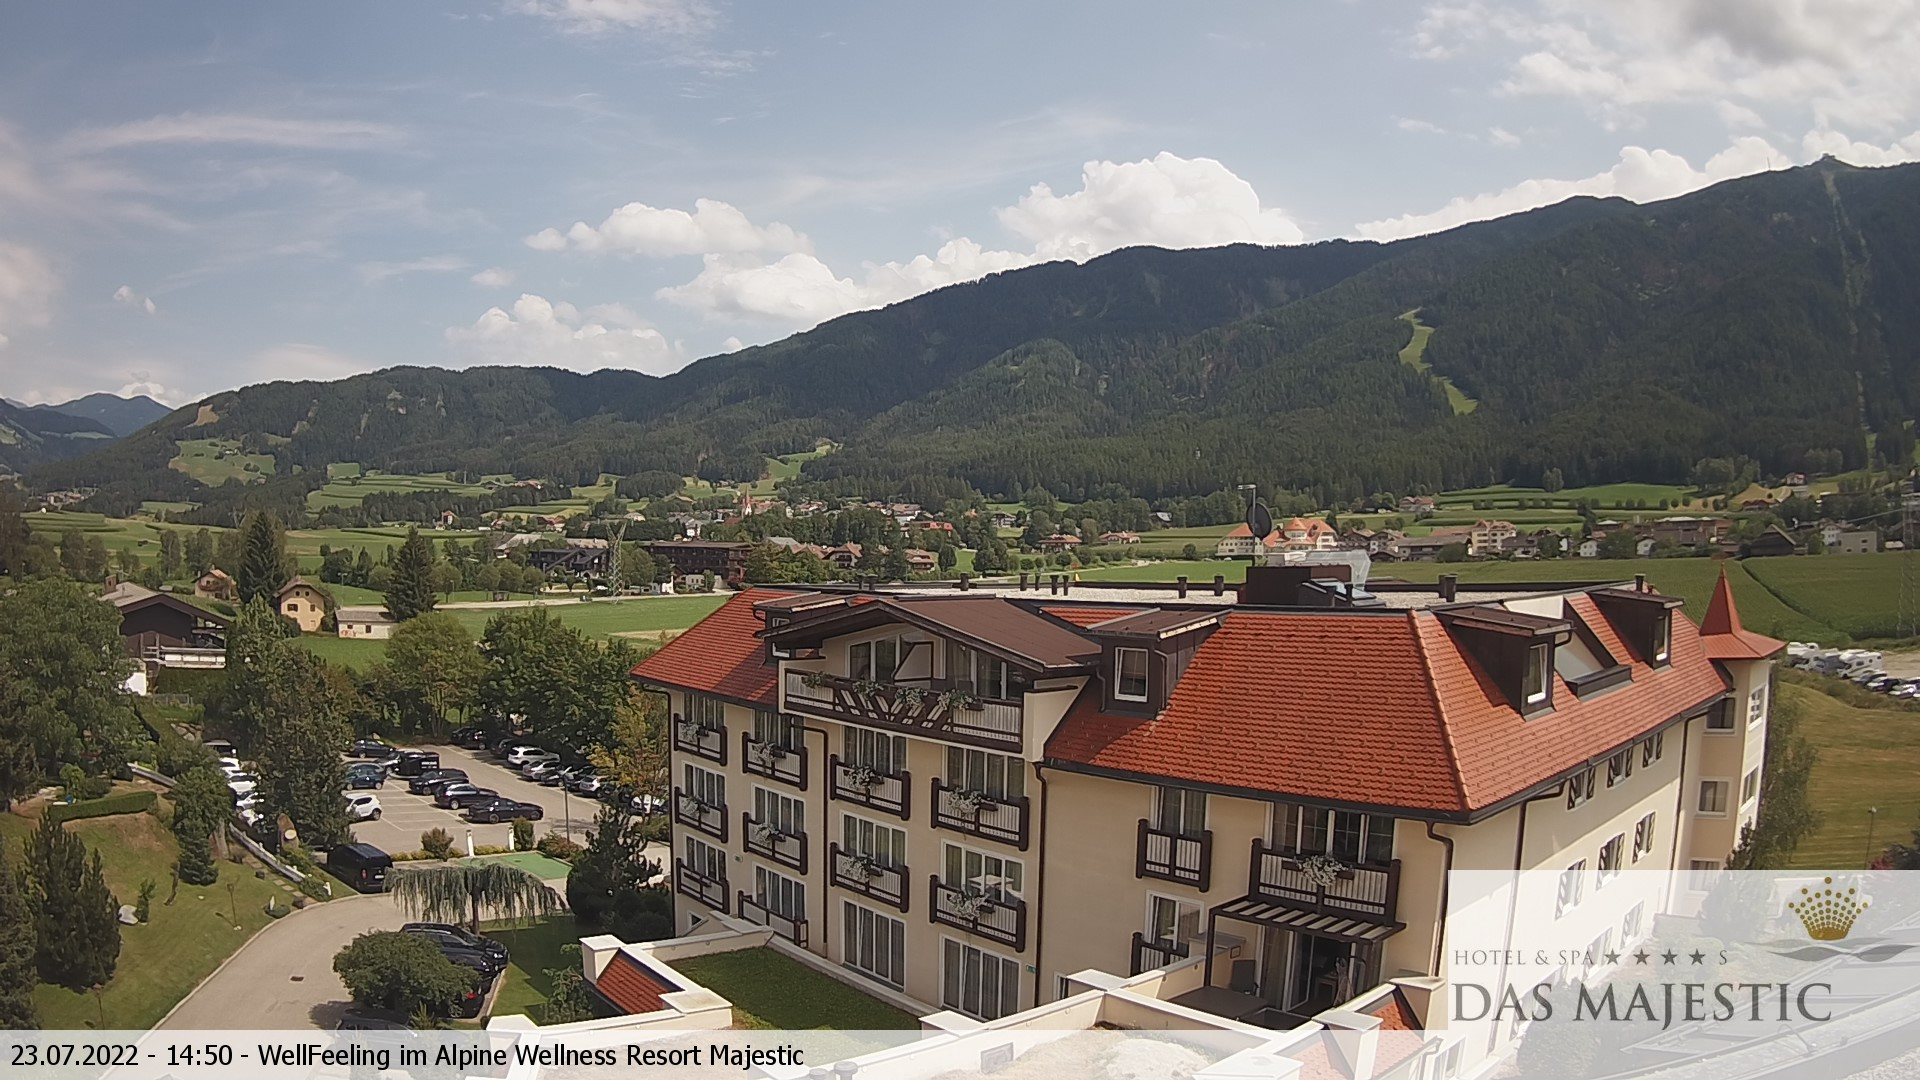 Webcam Hotel Majestic a Riscone